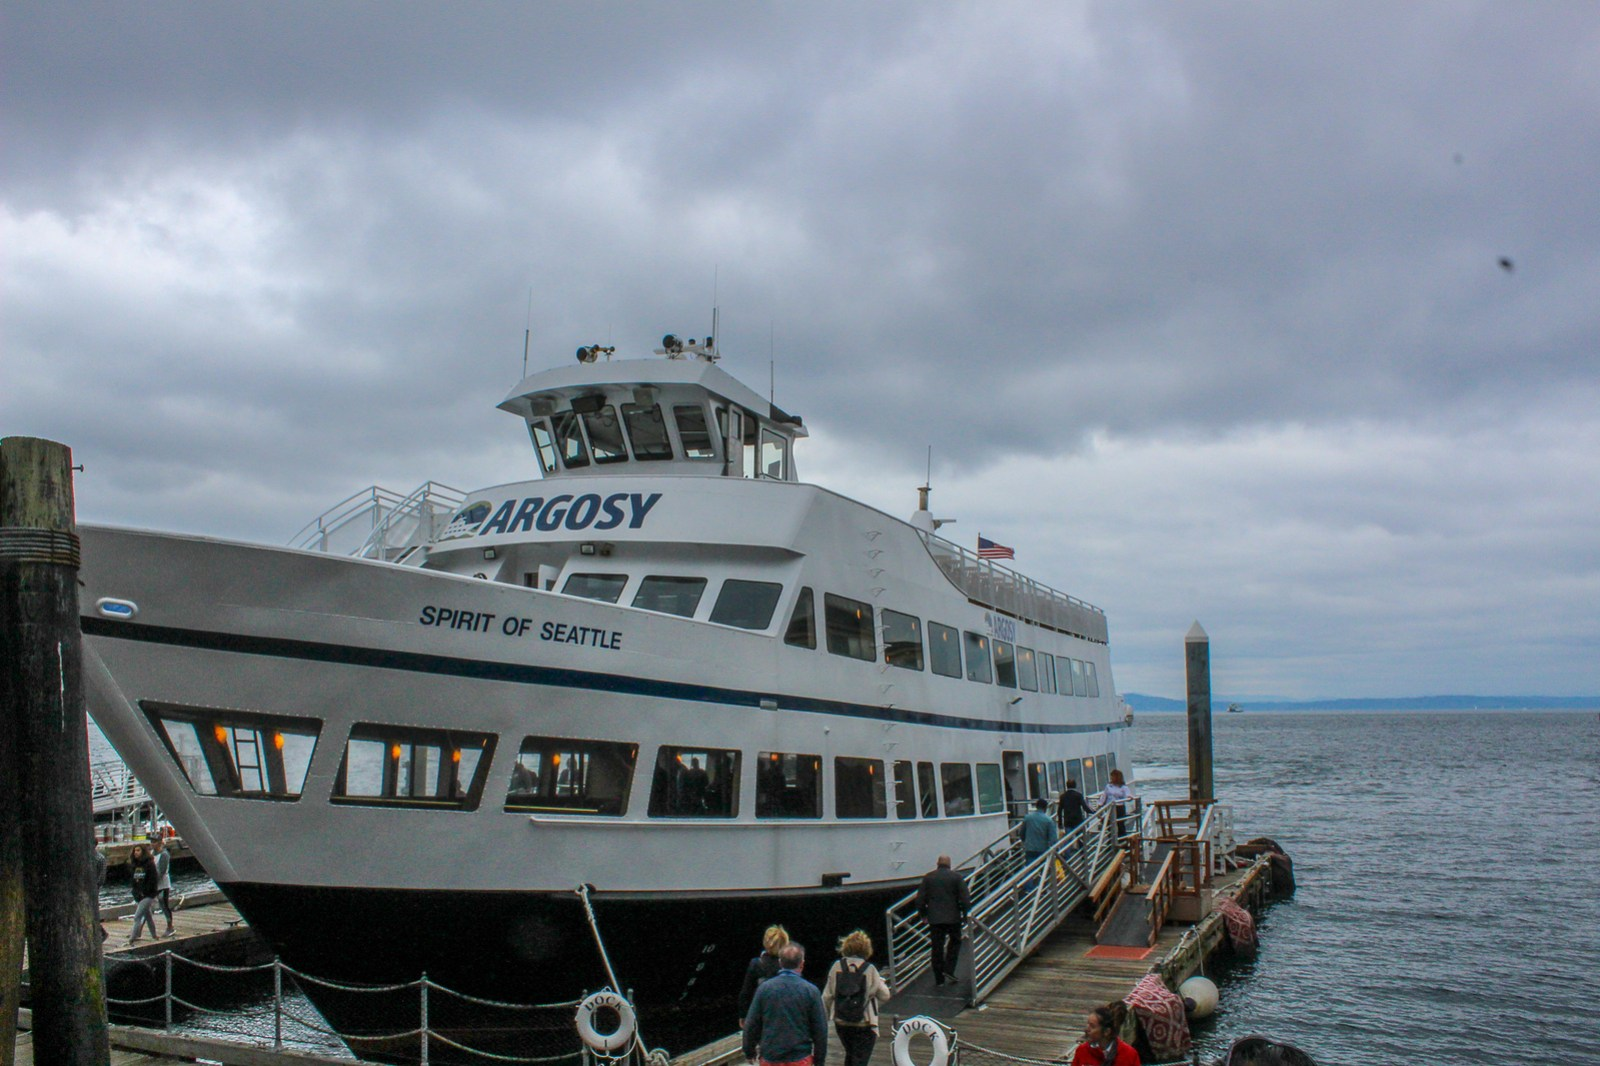 citypass seattle review tip: don't miss out on a harbor cruise